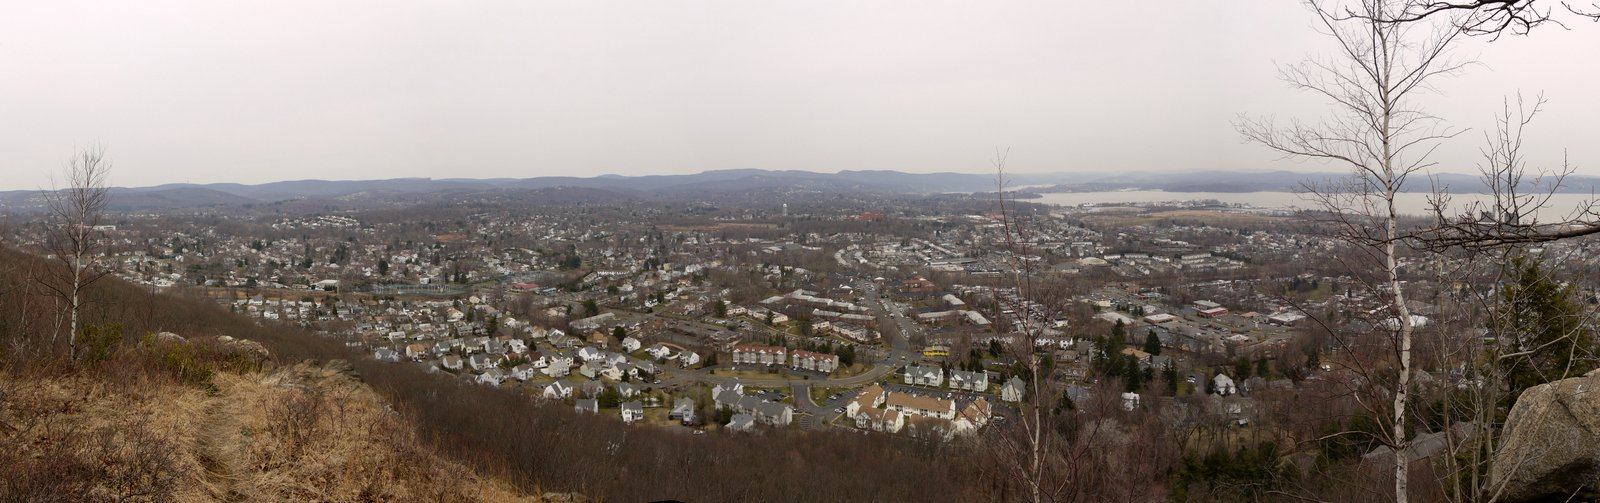 West Haverstraw, from Little Tor, in High Tor State Park, NY